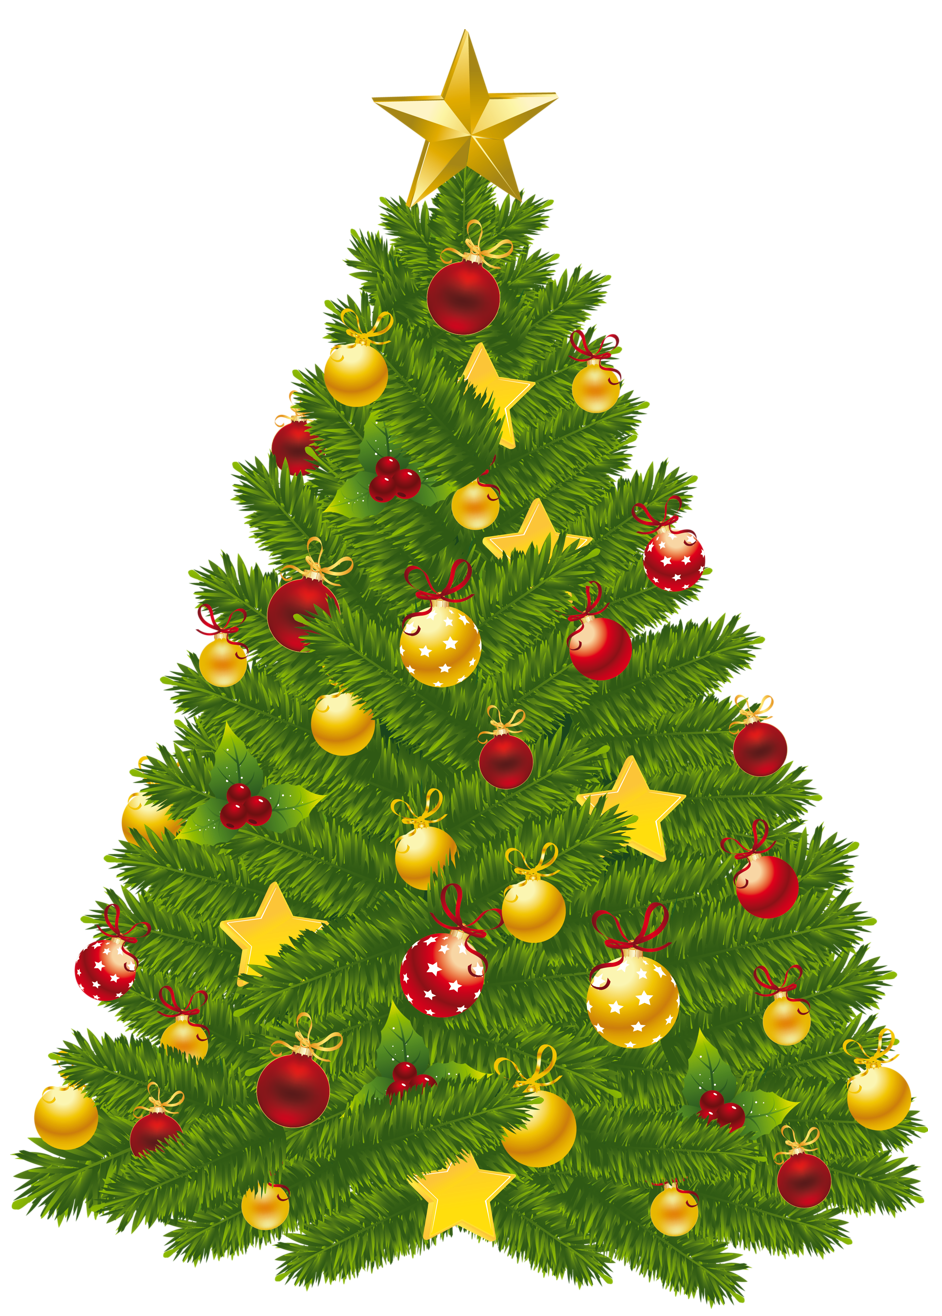 Transparent christmas tree clipart jpg freeuse Transparent Christmas Tree Clipart | Gallery Yopriceville - High ... jpg freeuse